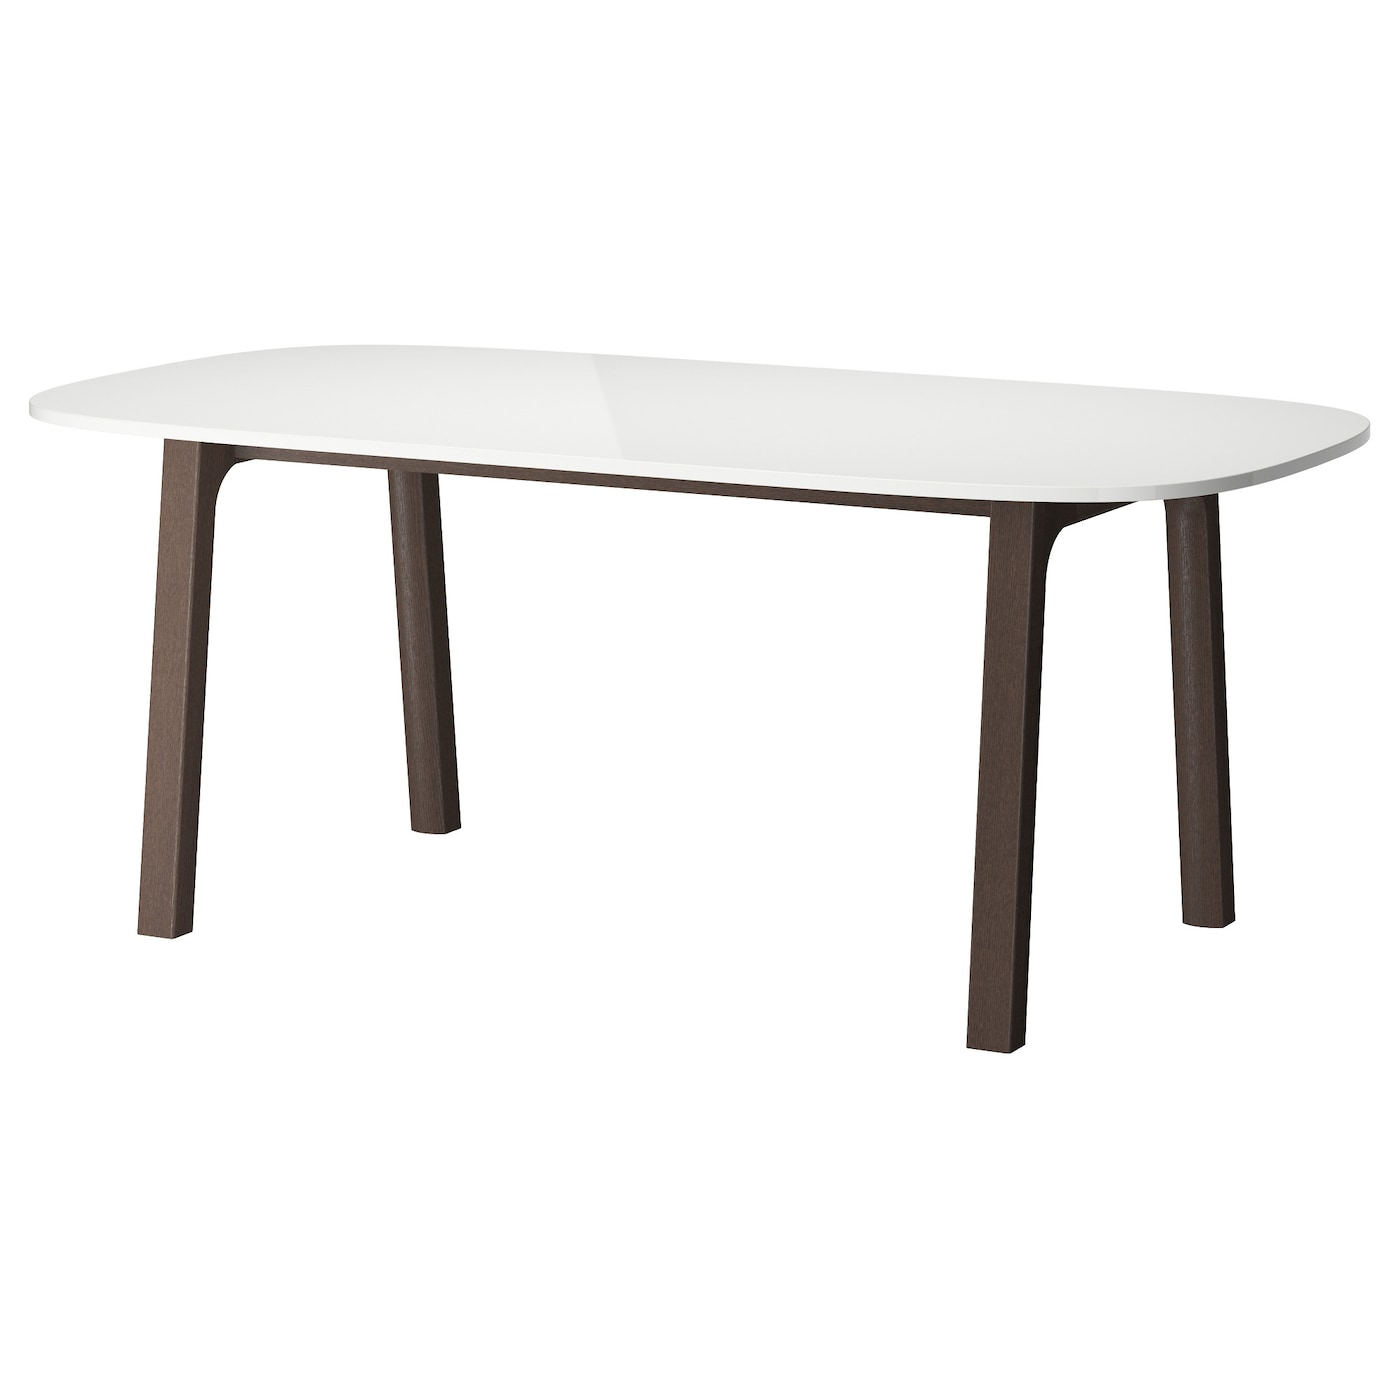 Oppeby table white v stan dark brown 185x90 cm ikea for Table ikea 4 99